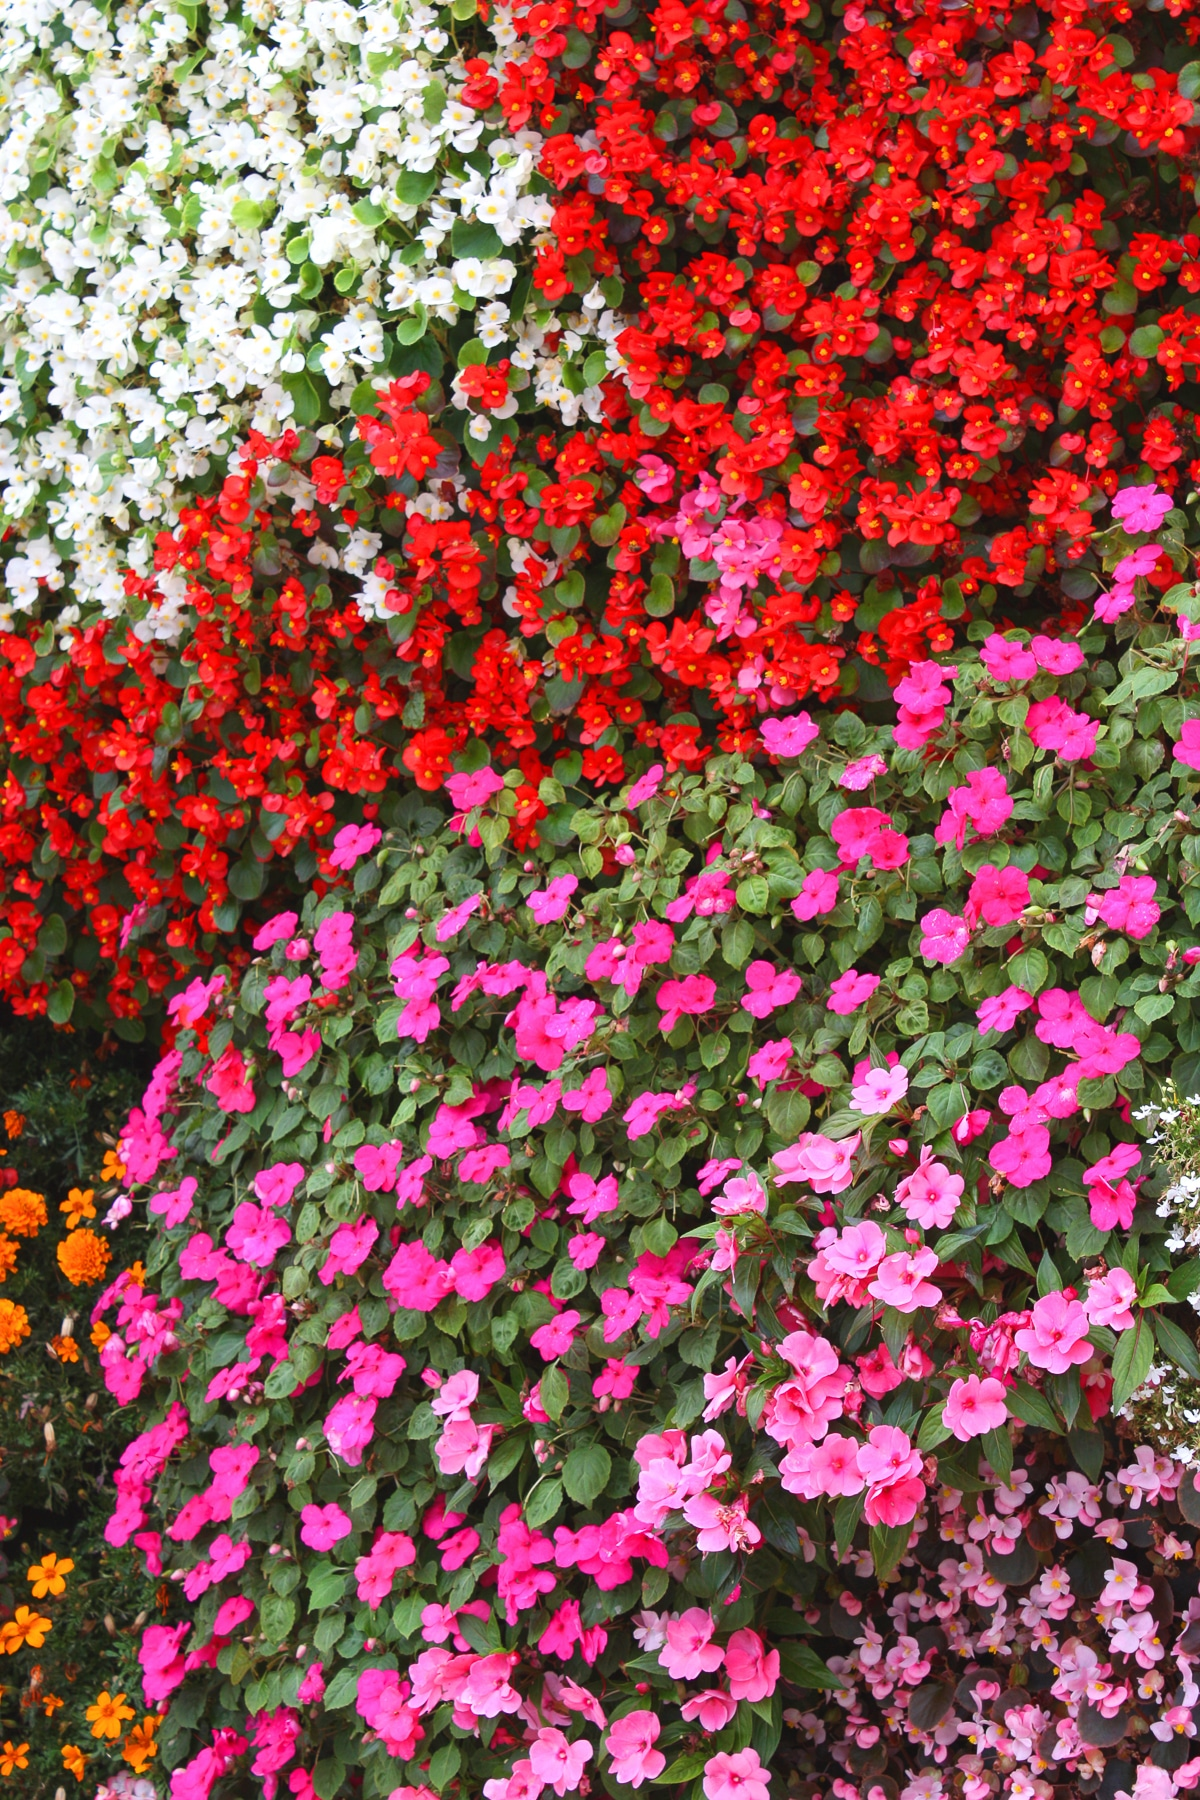 A carpet of pink, red, and white Impatiens flowers with dark green leaves blooming in the shade